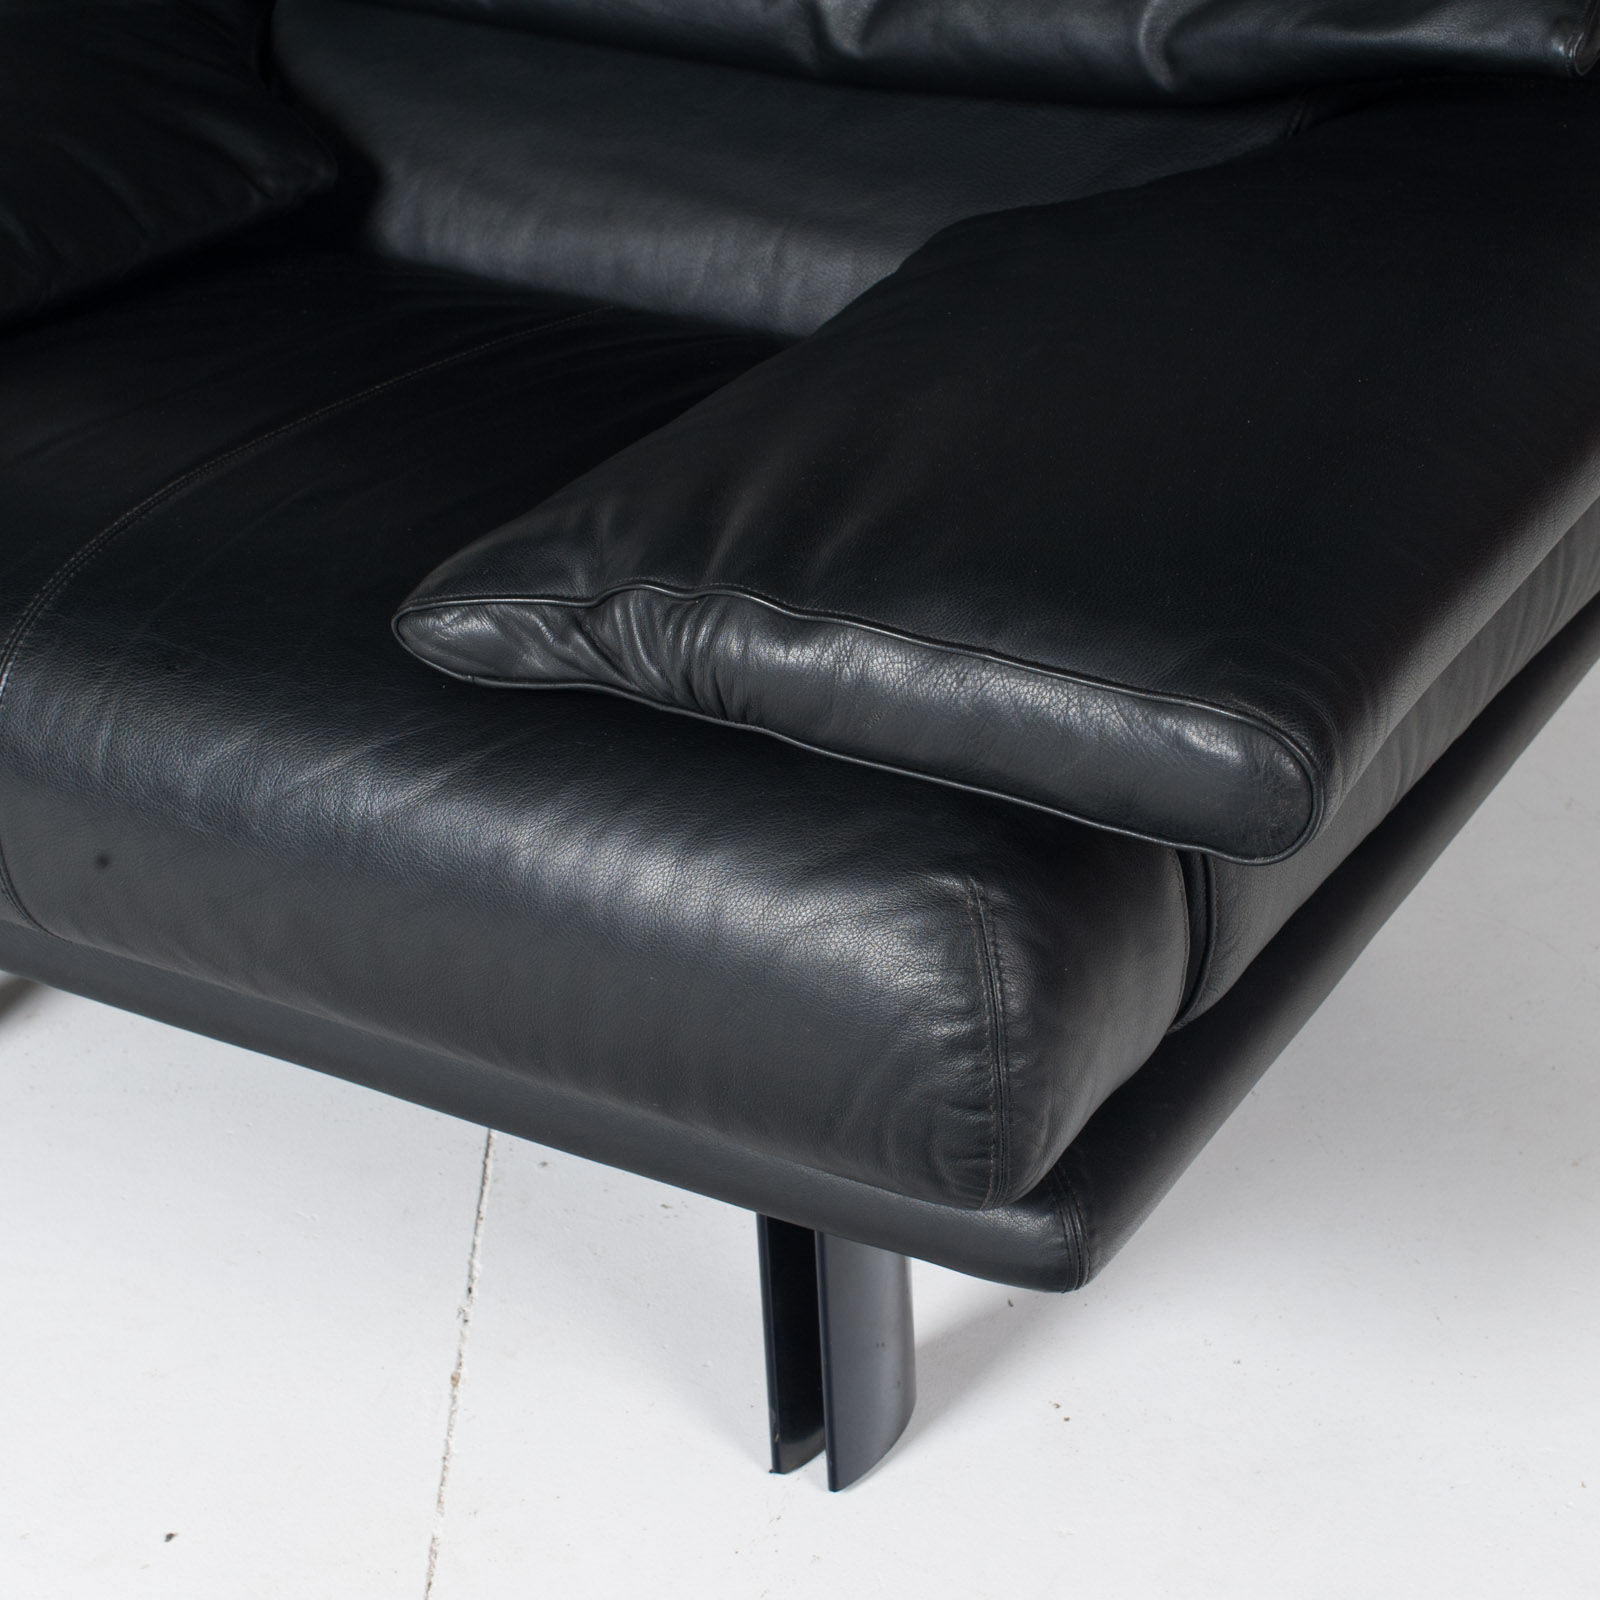 Alanda Armchair By Paolo Piva For B&b Italia In Black Leather, 1980s, Italy 10